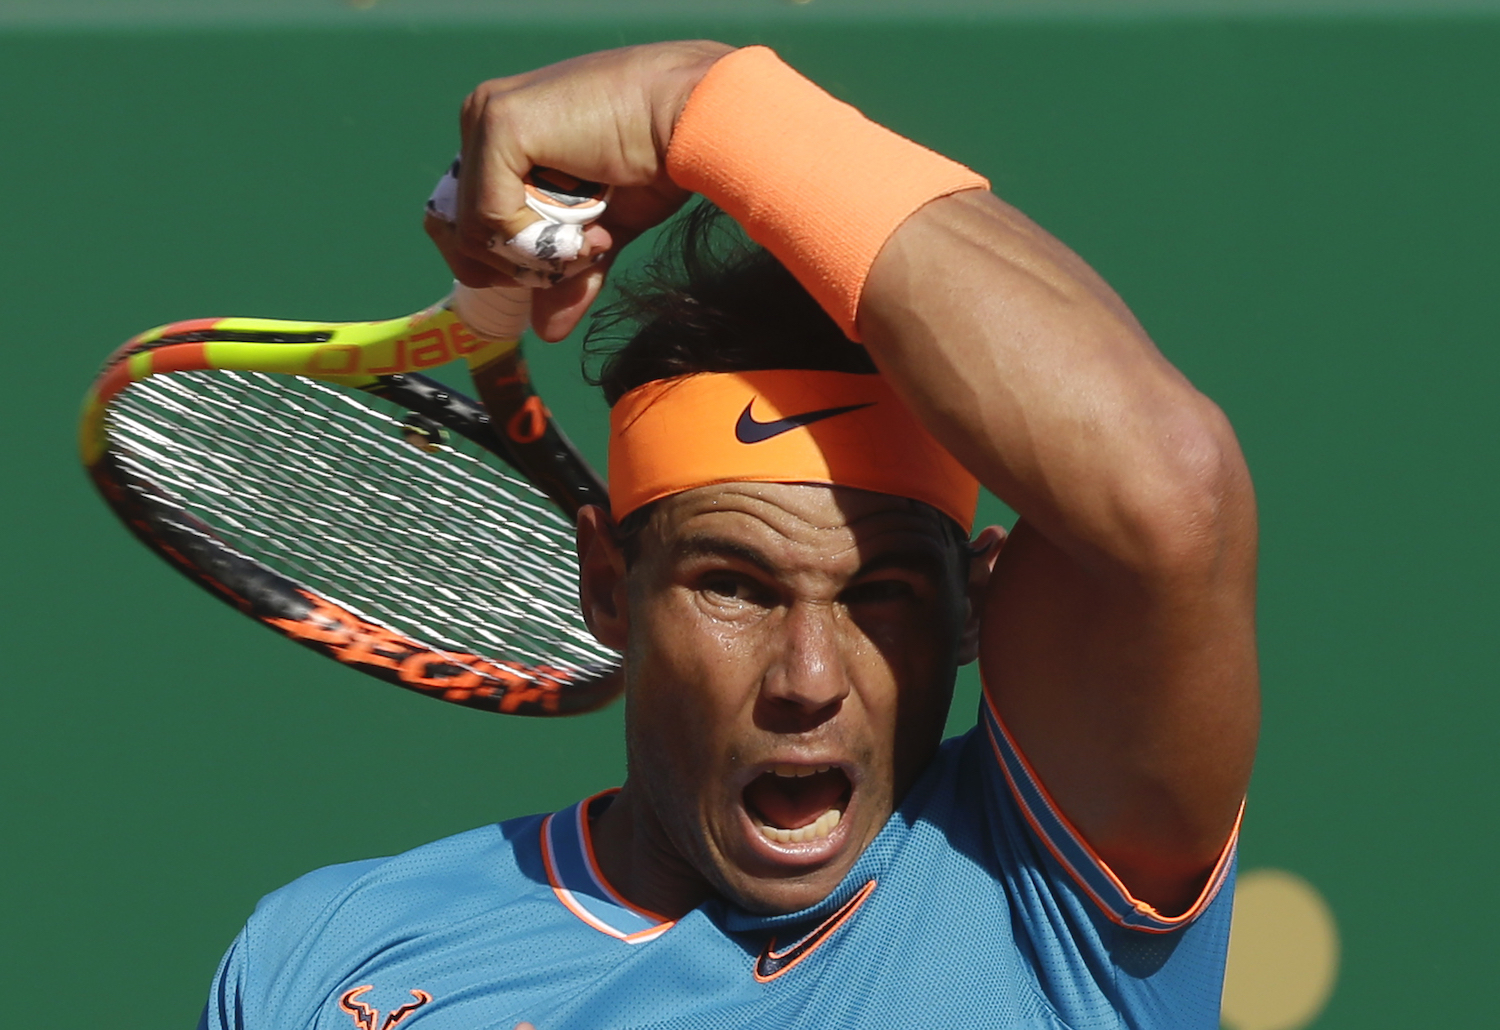 Rafael Nadal Isn T The Favorite At The 2020 French Open So It Goes Sort Of In This Upside Down Pandemic Year Oregonlive Com